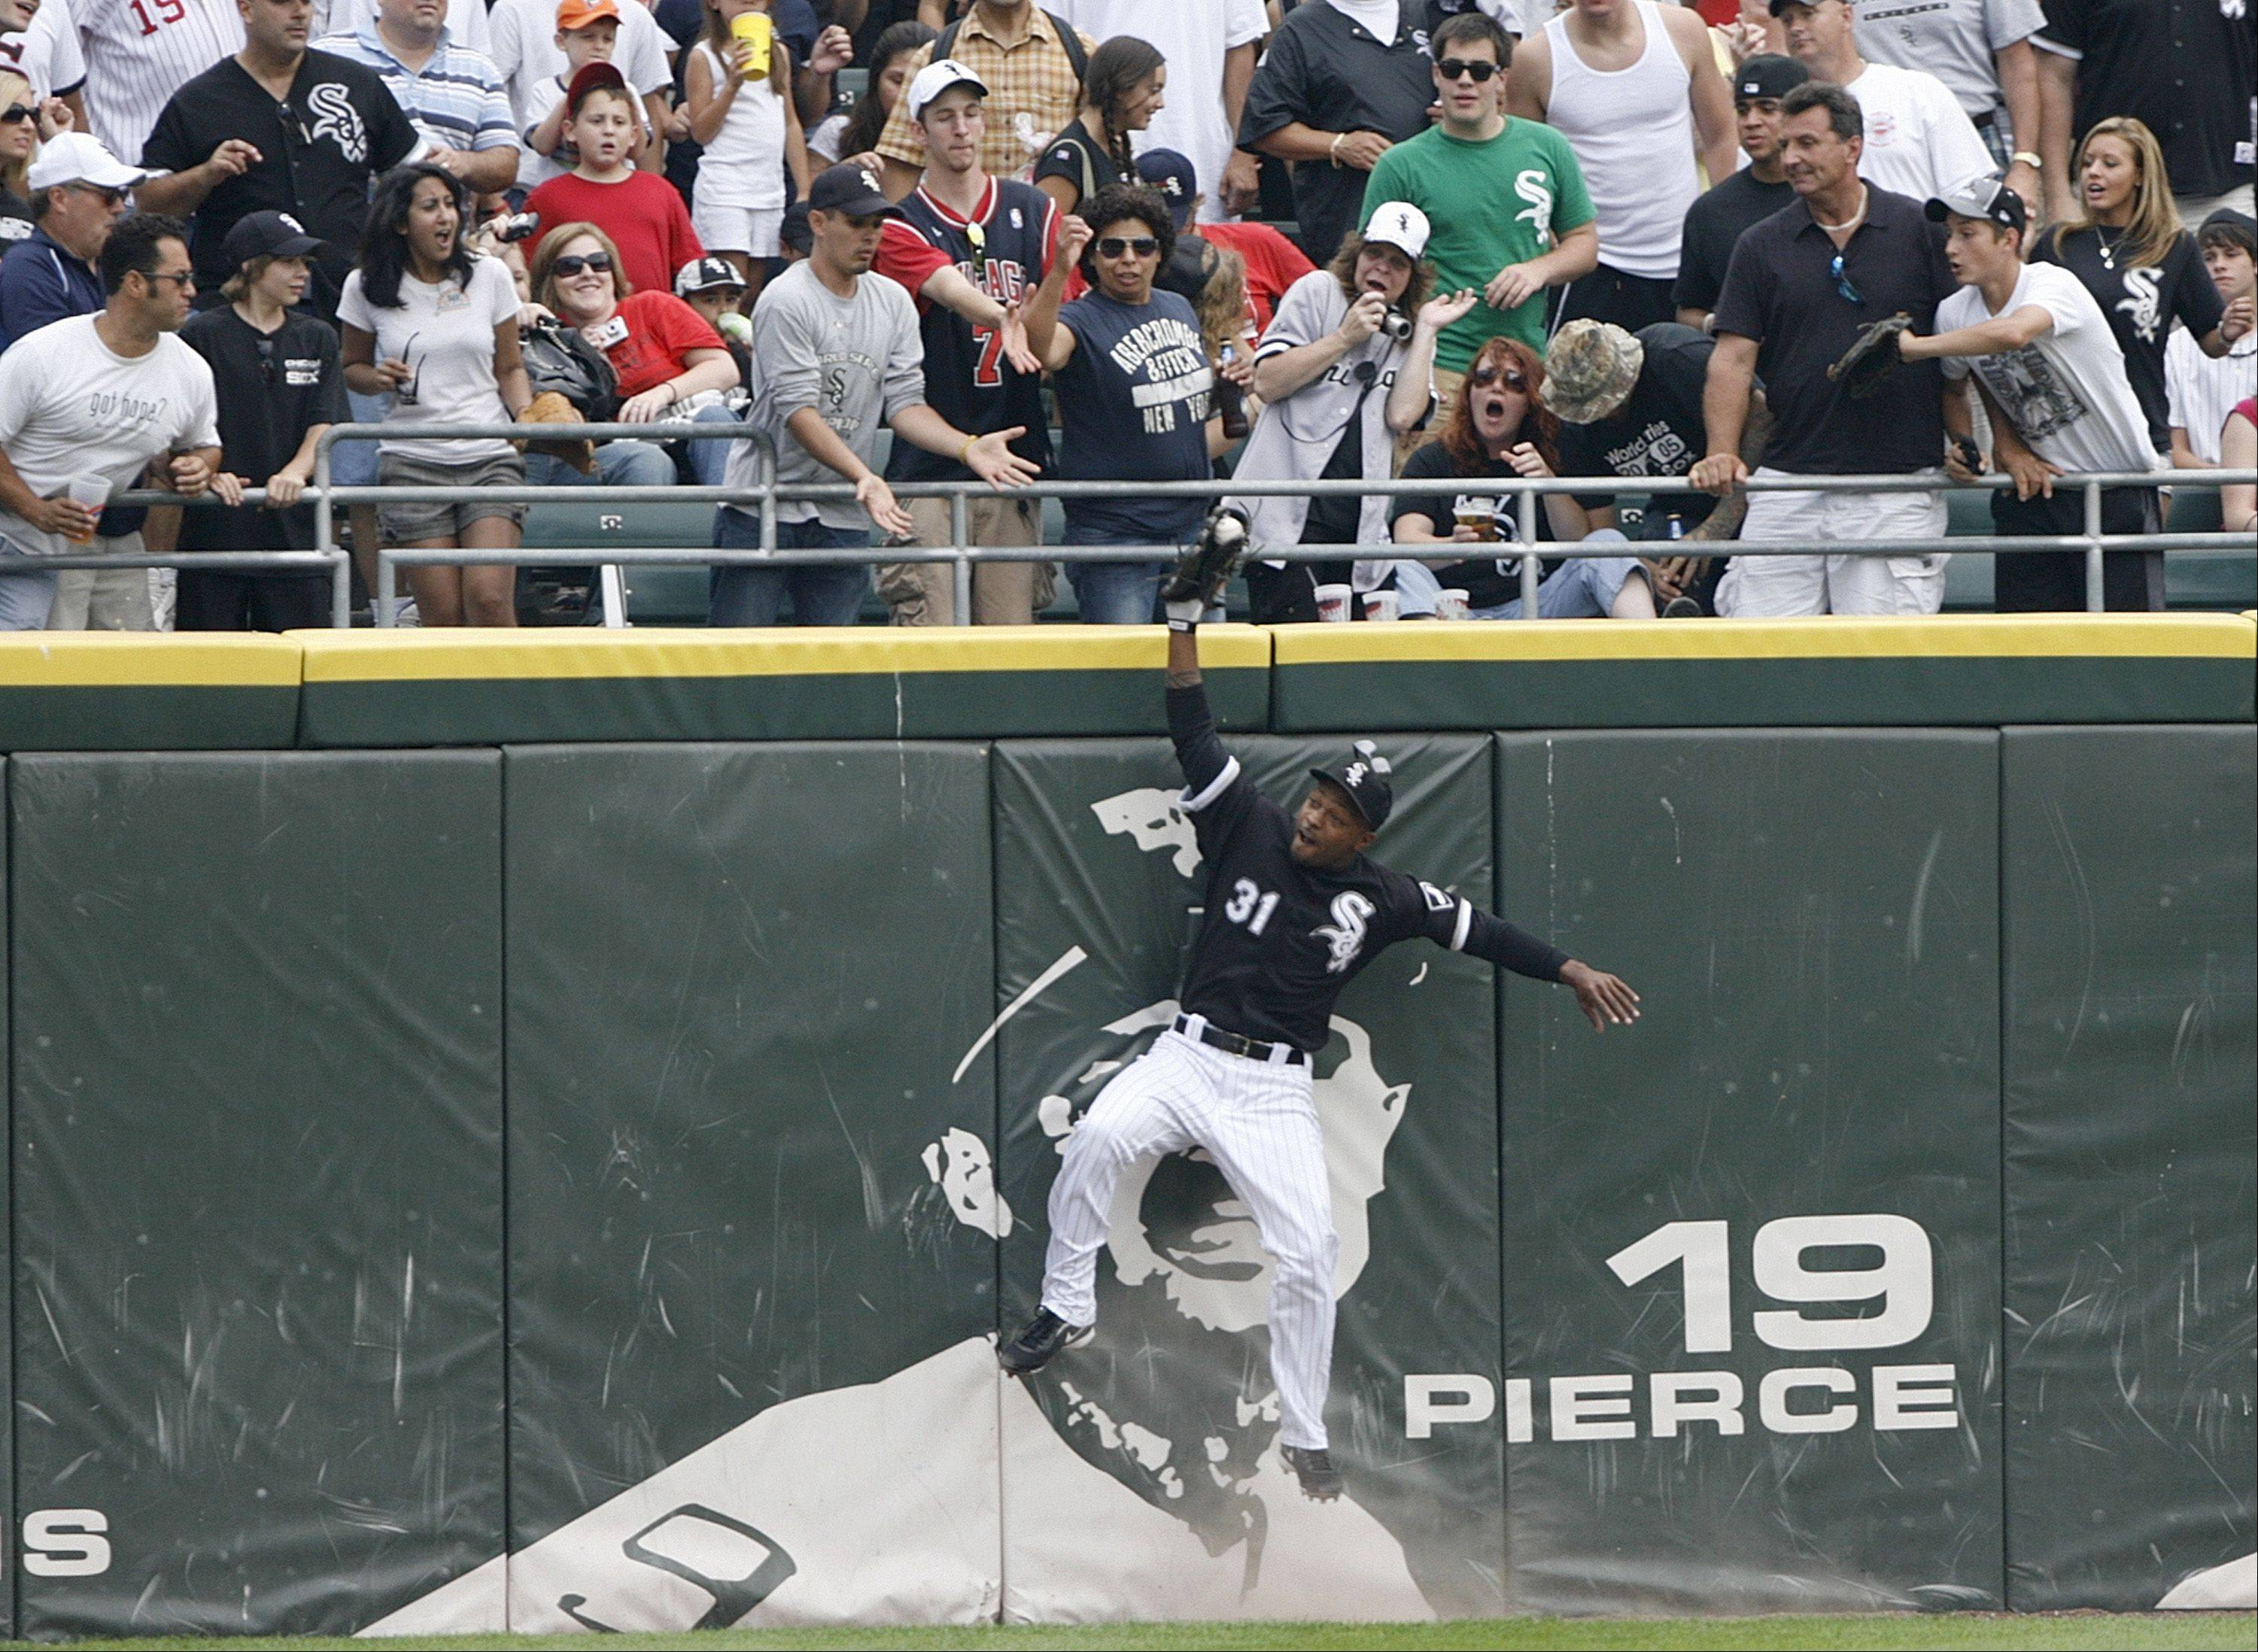 Chicago White Sox center fielder DeWayne Wise falls into the wall as he catches a deep fly.